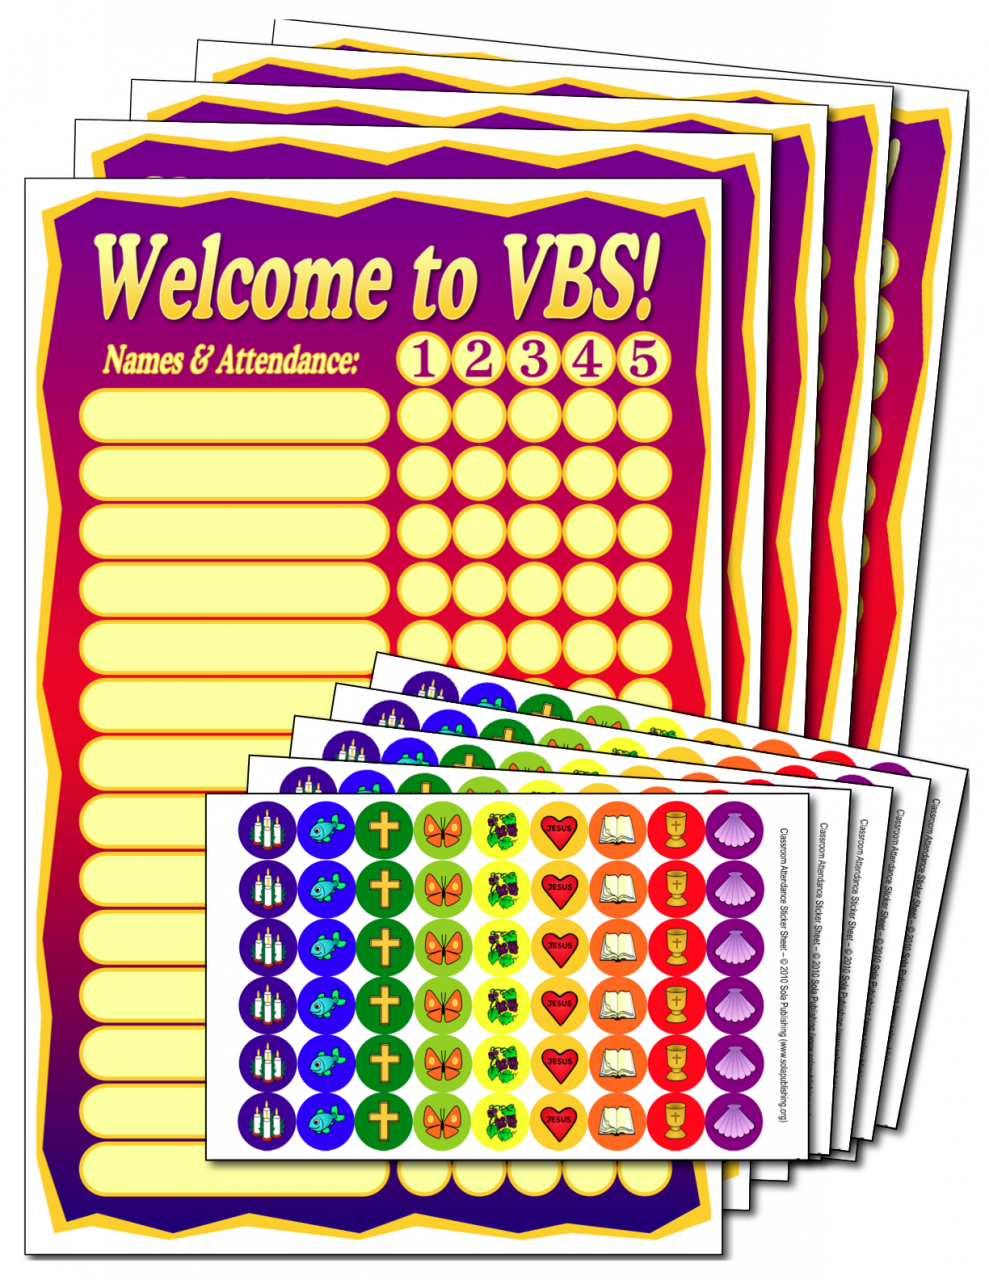 VBS Attendance Posters & Stickers V-5000